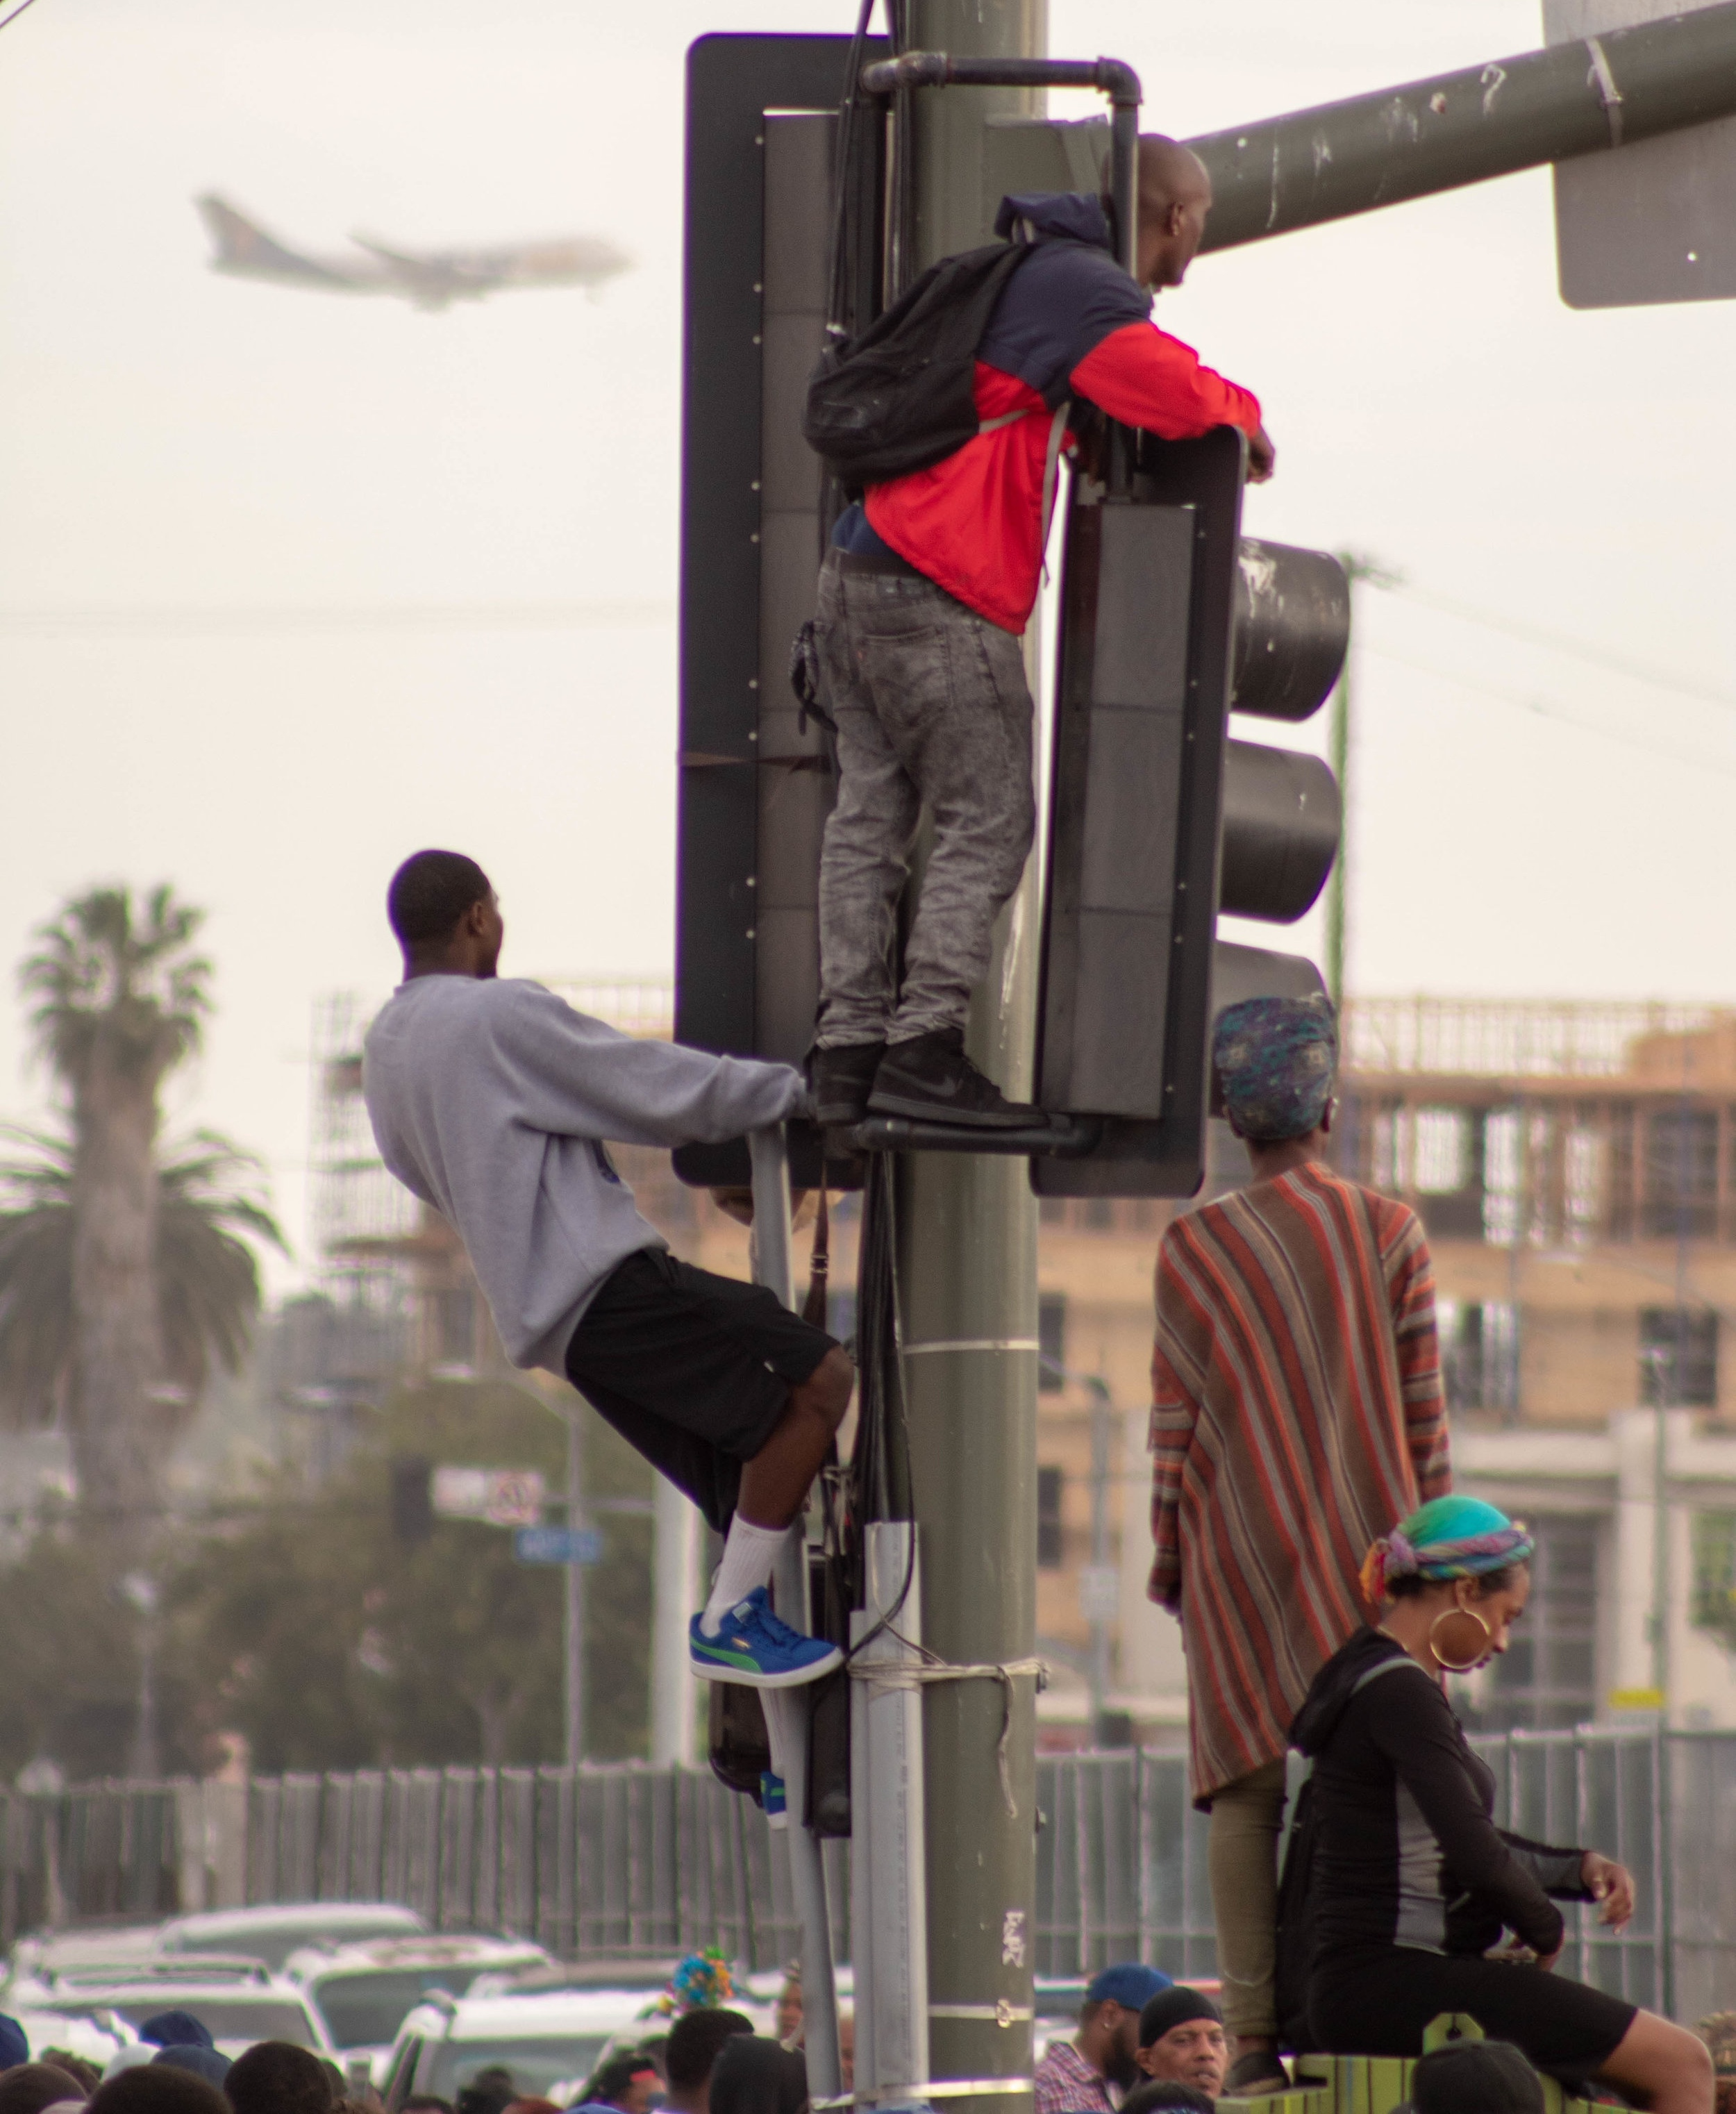 At the corner of Crenshaw and Slauson in South Los Angeles, California, people climbed to the top of traffic lights during the funeral procession of the late rapper Nipsey Hussle on Thursday, April 11, 2019. (Catherine Lima/Corsair Staff)